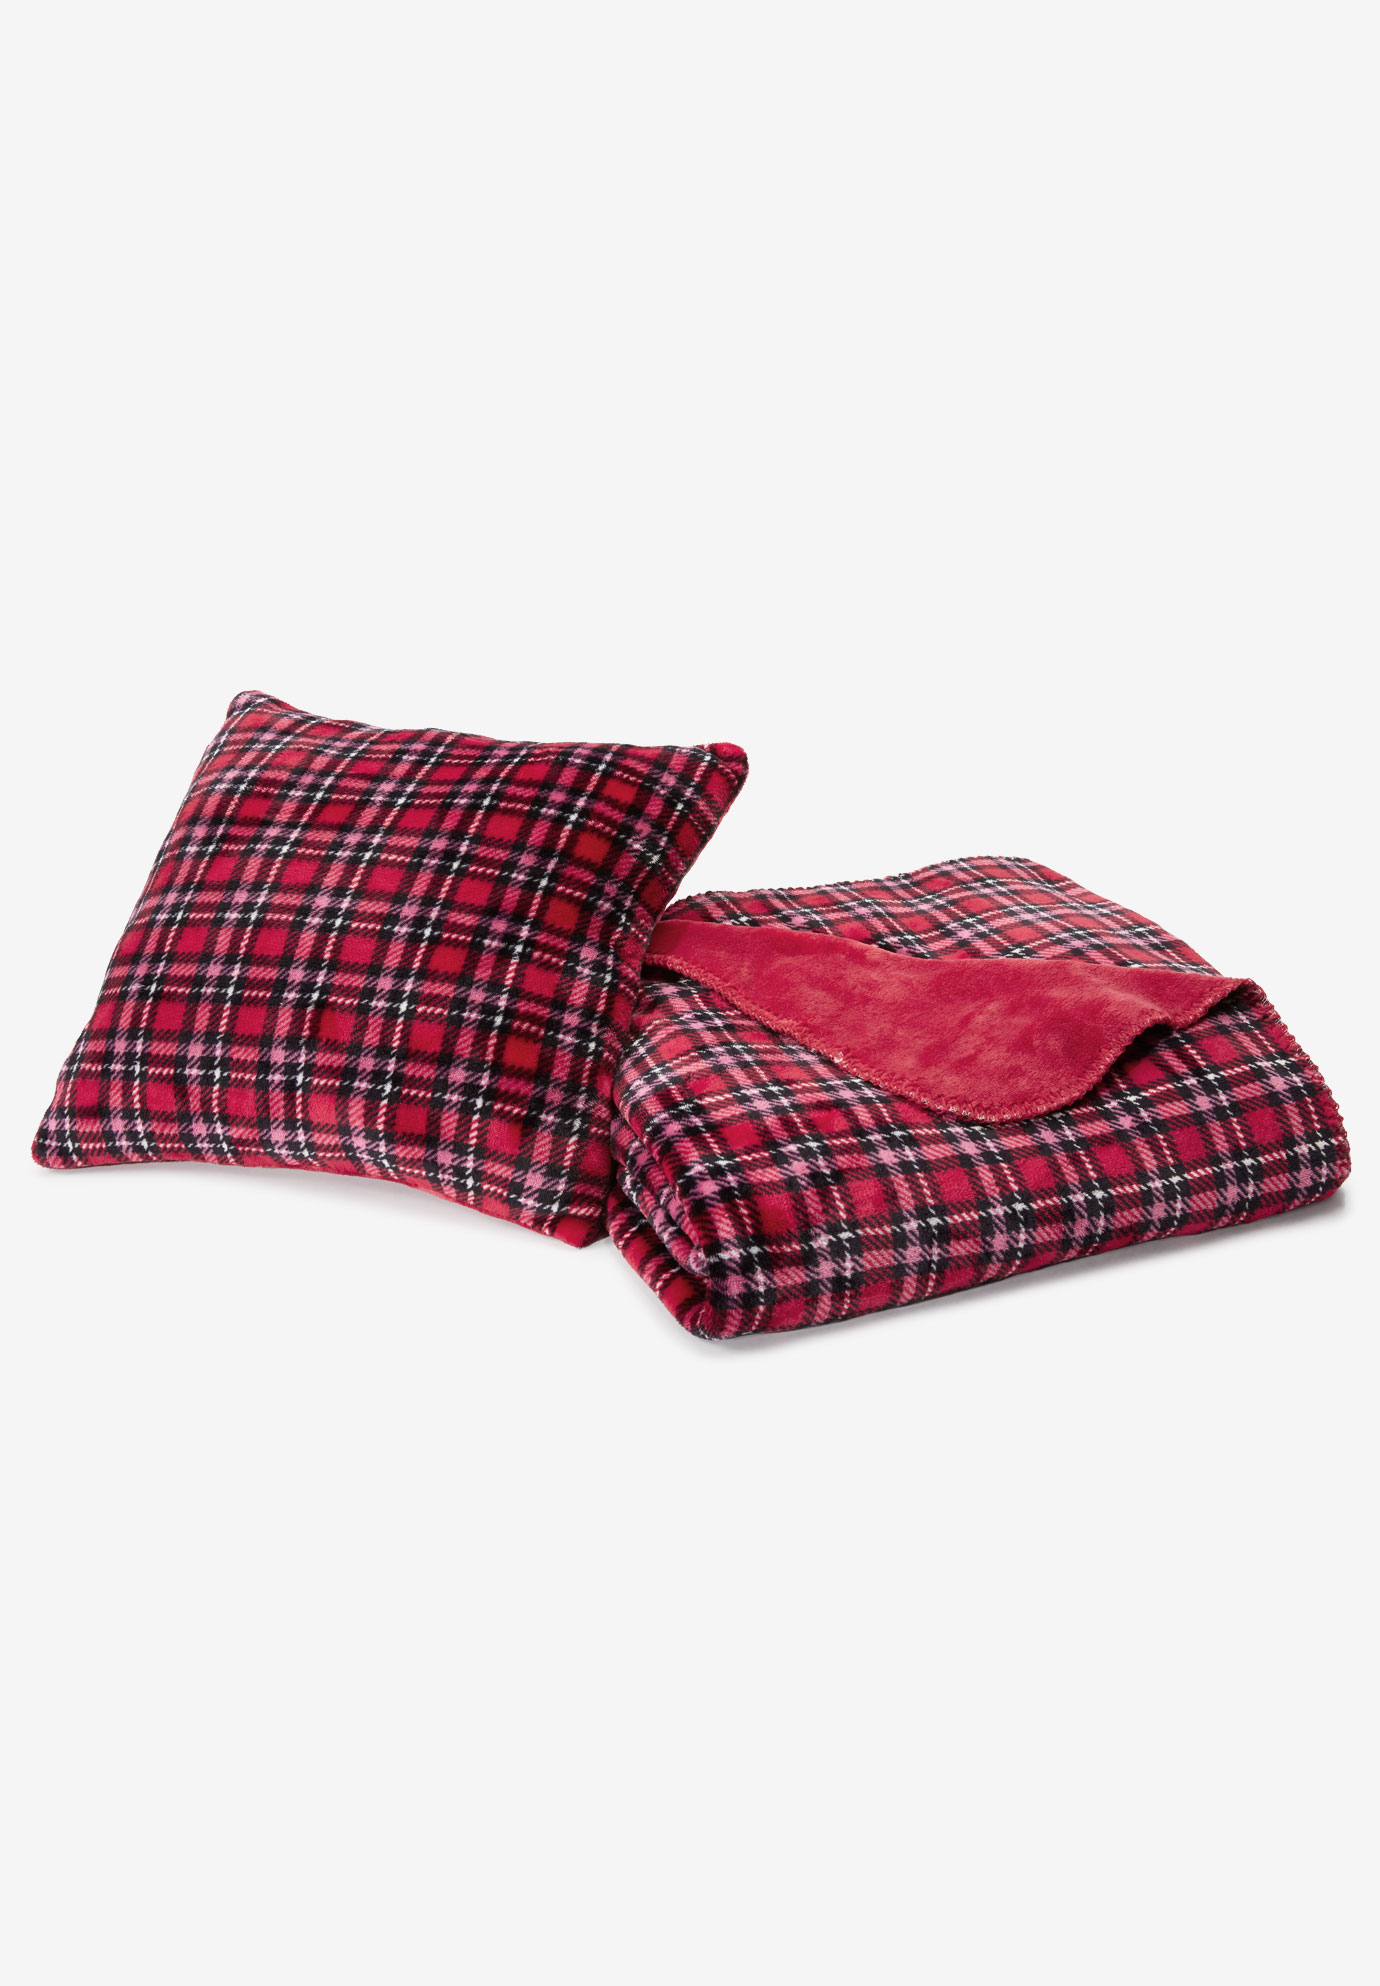 Plaid Fleece Pillow & Throw Set, CLASSIC RED PLAID